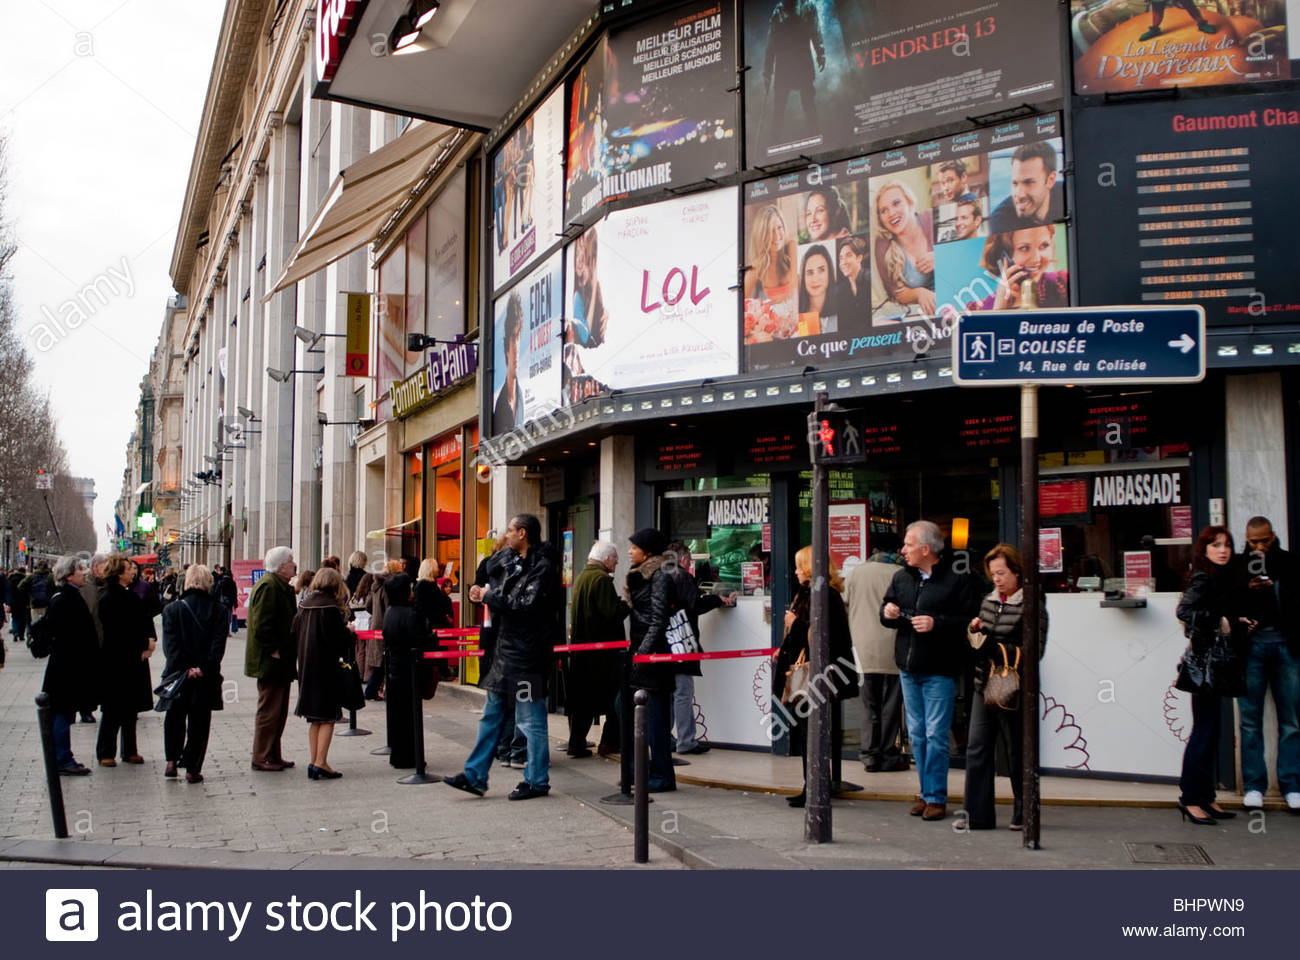 paris france crowd of people cinema theater outdoors movie stock photo royalty free image. Black Bedroom Furniture Sets. Home Design Ideas